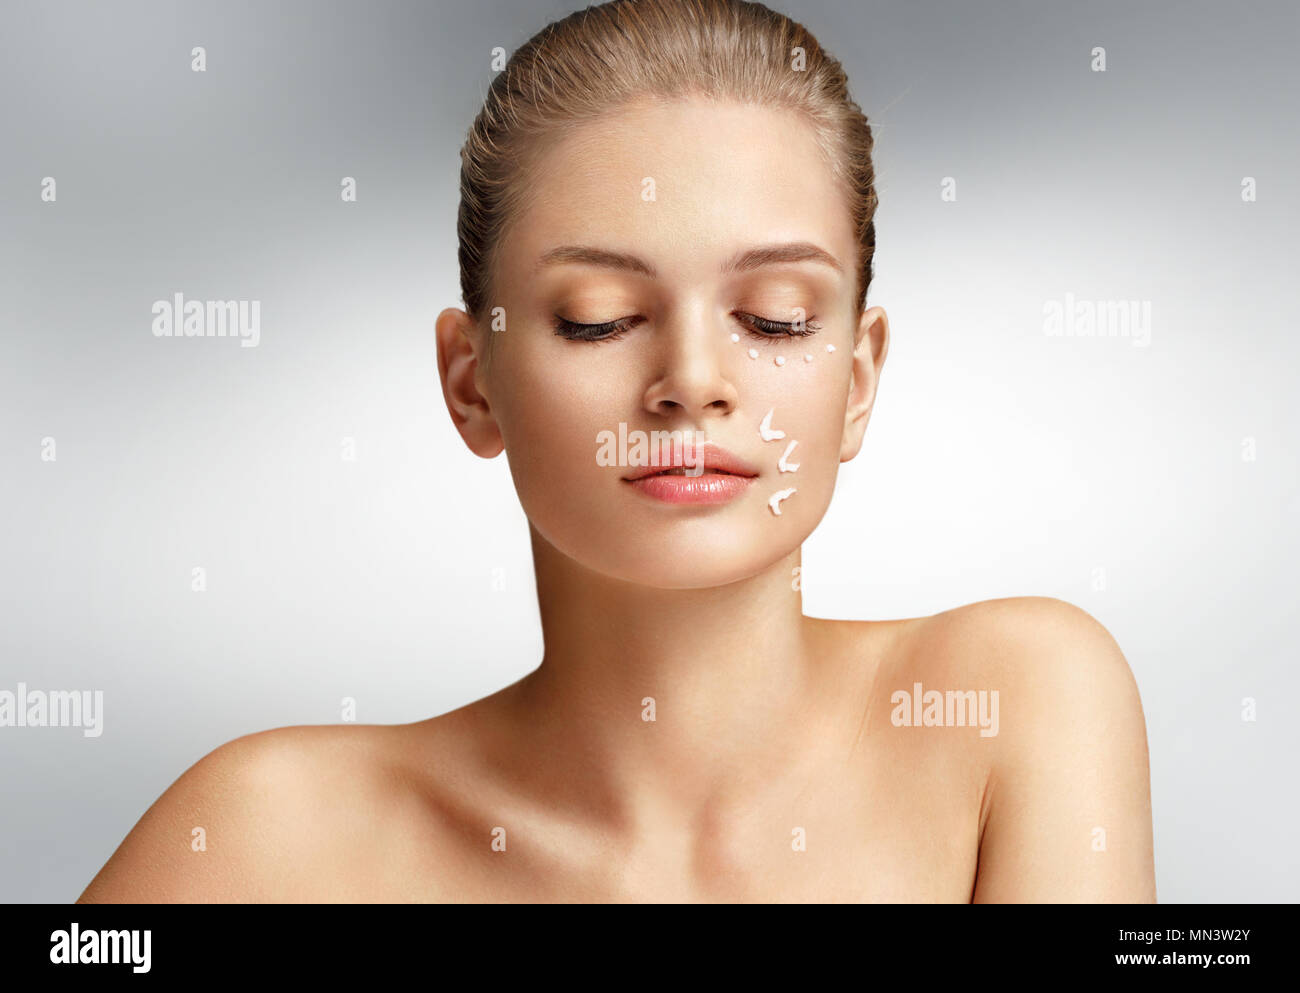 Attractive woman with perfect skin on grey background. Skin care concept Stock Photo